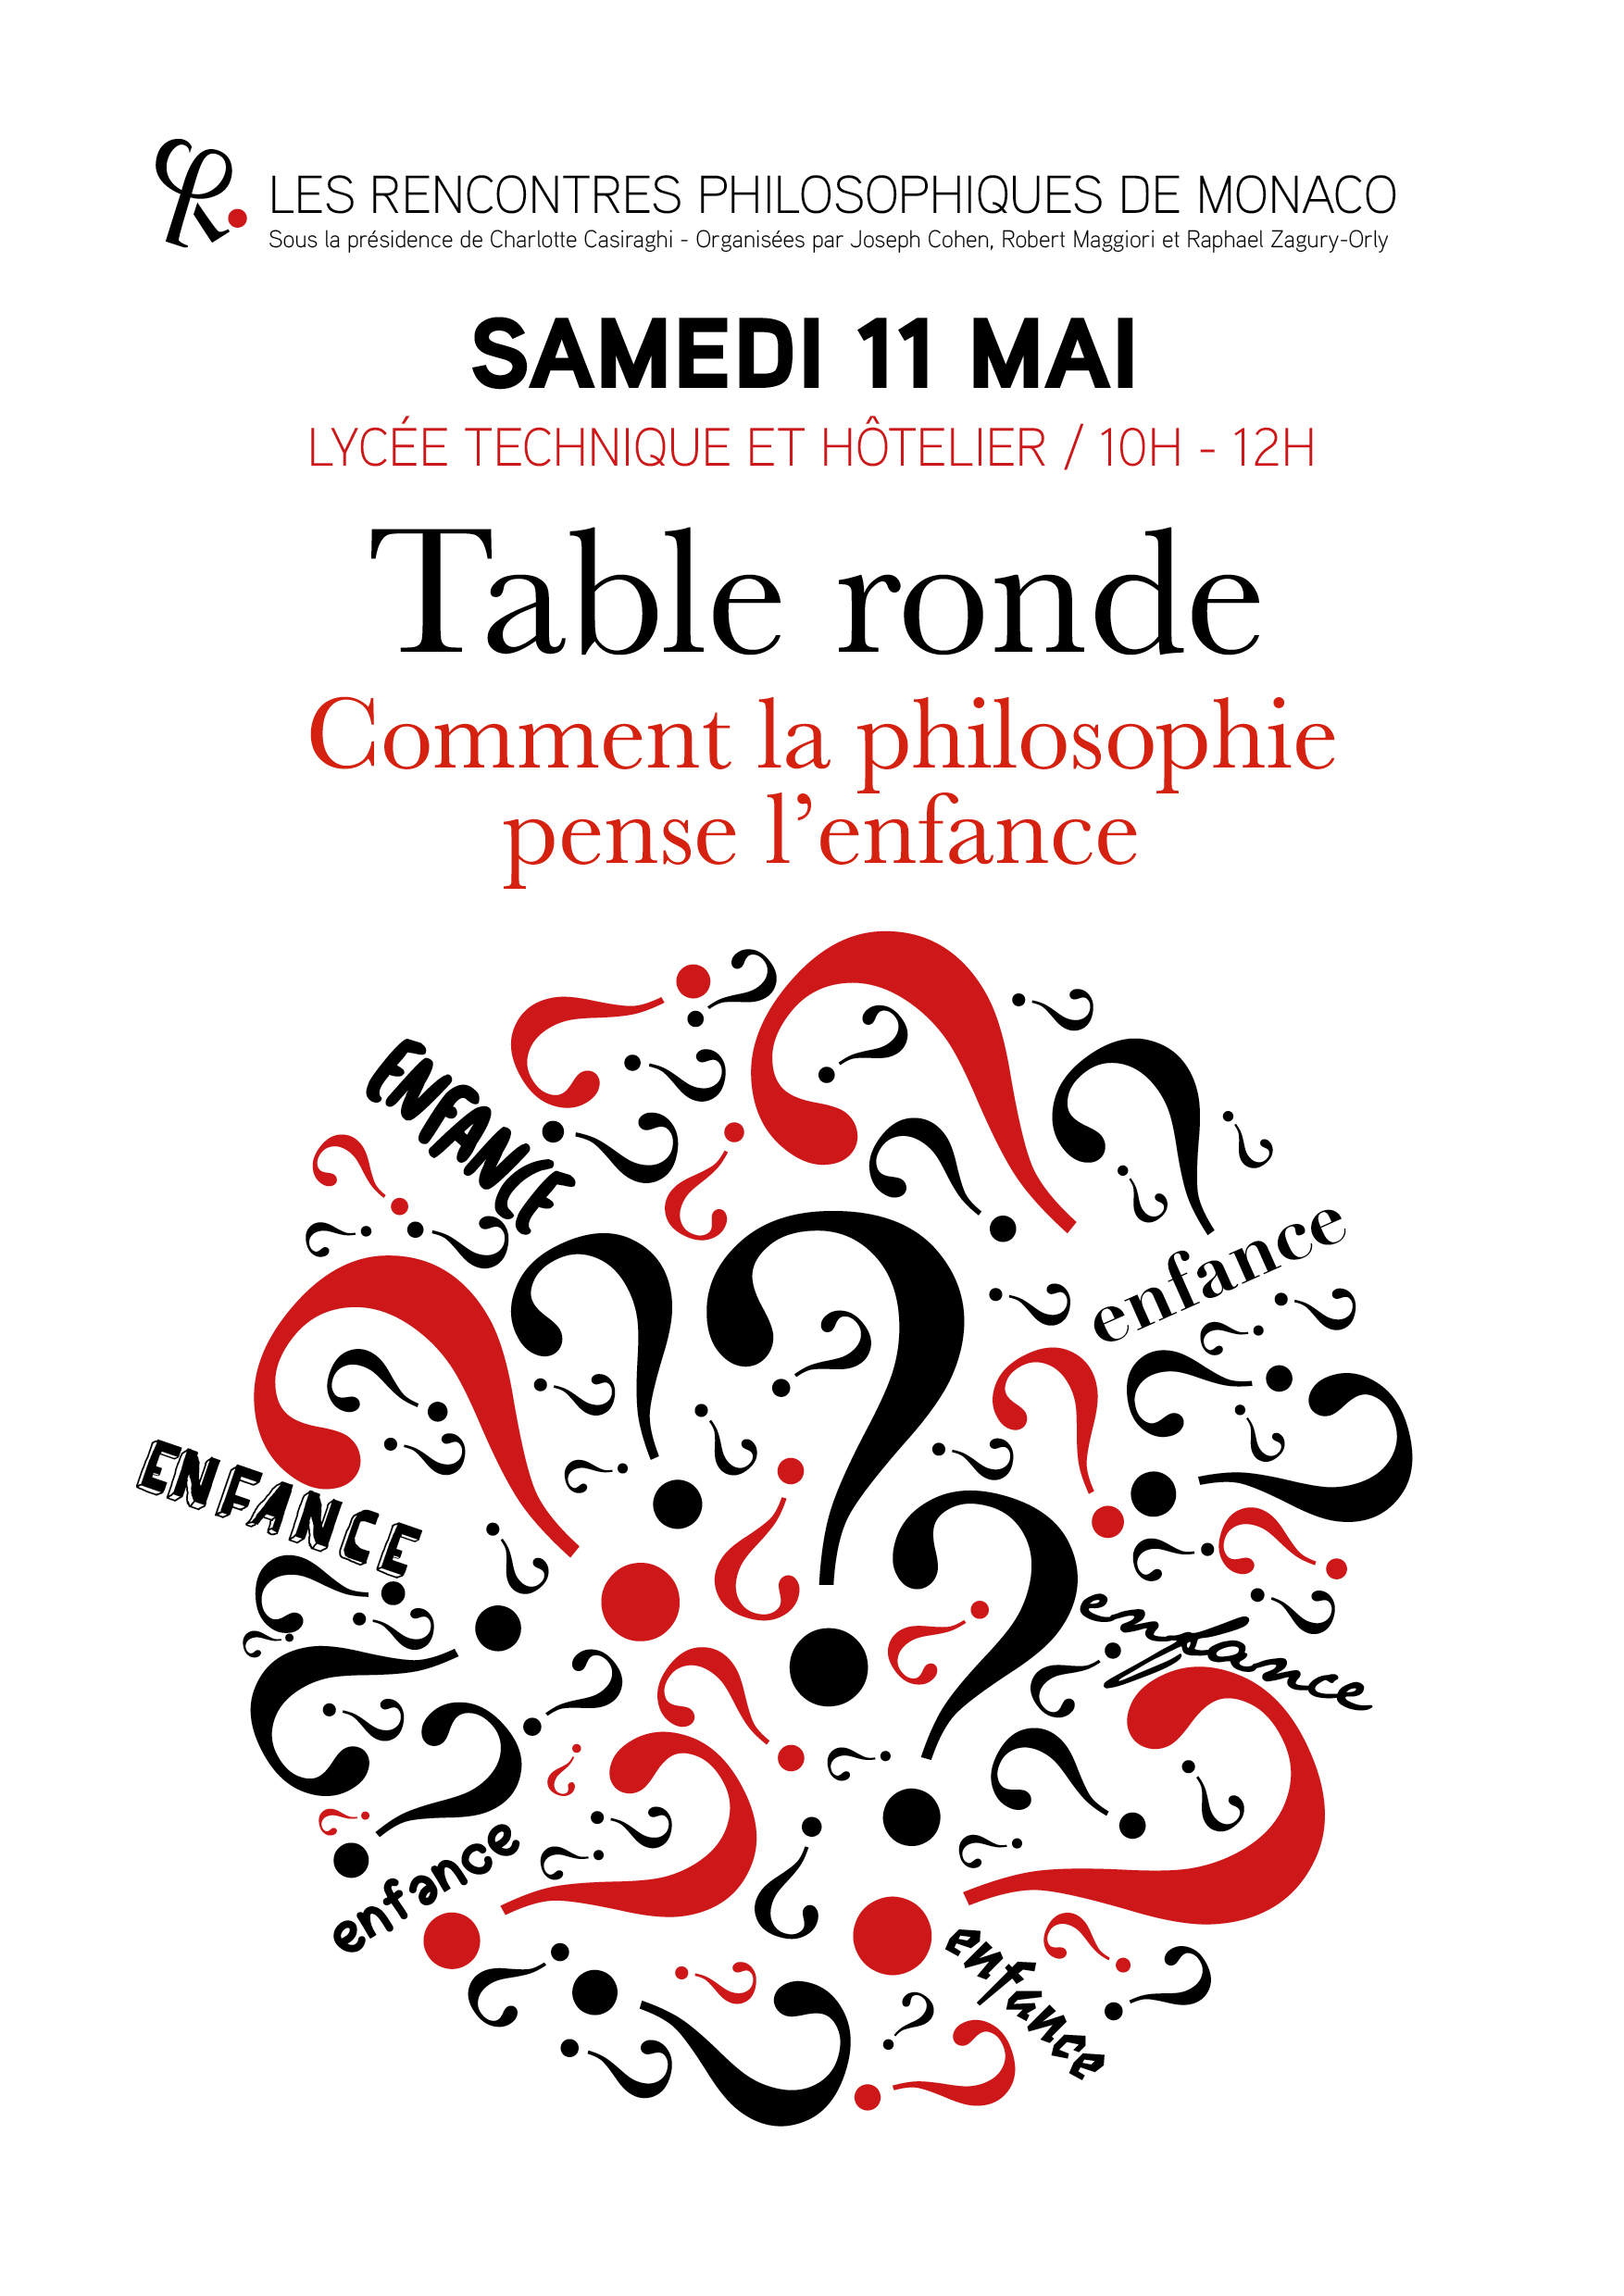 5429, 5429, flyer Table 1, flyer-table-1.jpg, 991259, http://philomonaco.com/wp-content/uploads/2019/04/flyer-table-1.jpg, http://philomonaco.com/atelier/exposition-lhumain/flyer-table-1/, , 2, , , flyer-table-1, inherit, 5423, 2019-04-01 14:14:19, 2019-04-01 14:14:19, 0, image/jpeg, image, jpeg, http://philomonaco.com/wp-includes/images/media/default.png, 1754, 2480, Array